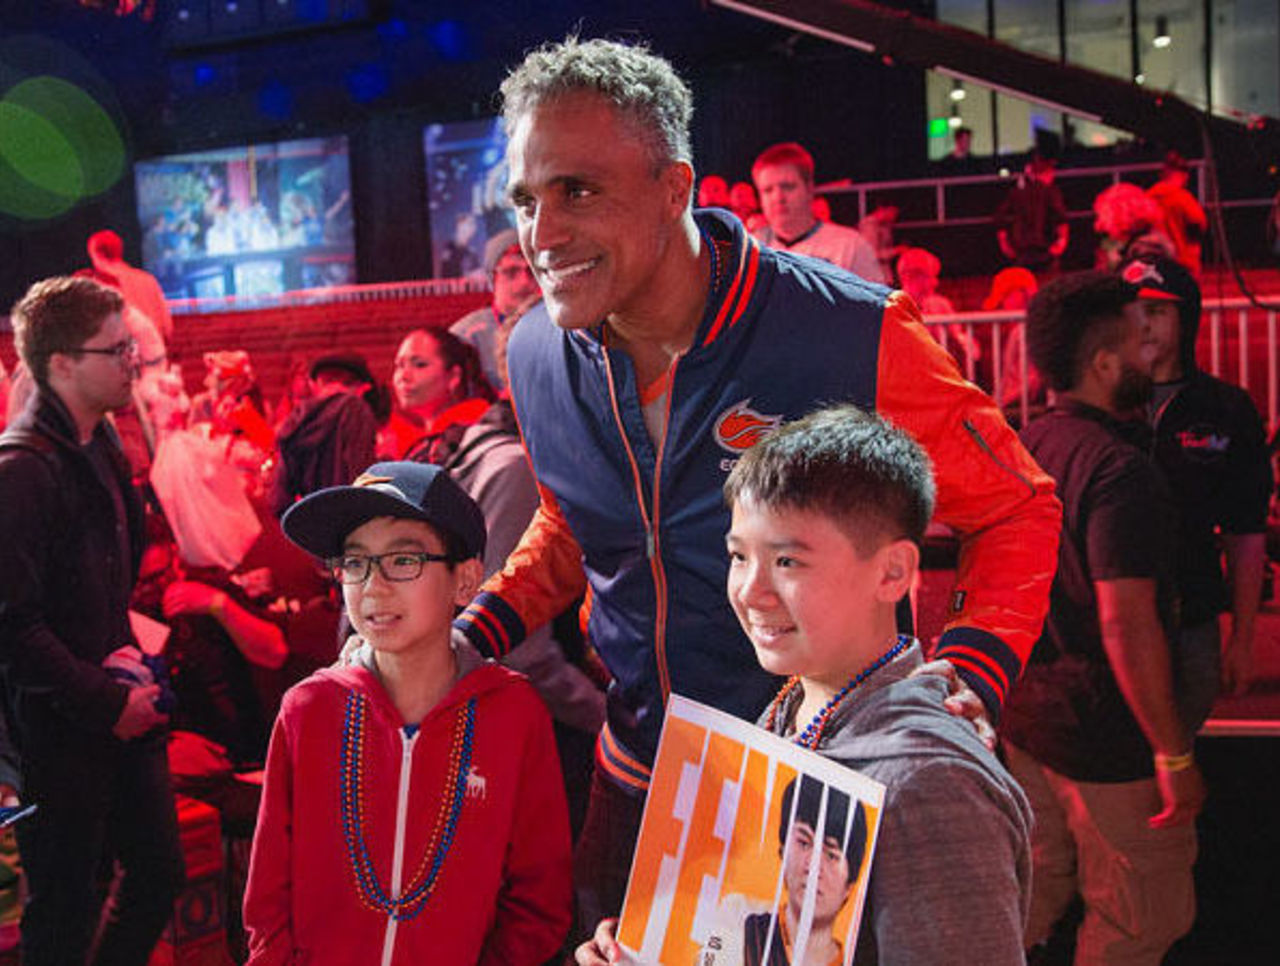 theScore esports Daily (May 10): New emails allegedly show Echo Fox shareholder threatened Rick Fox's family, while Chaos Esports' w33 steps back due to health issues